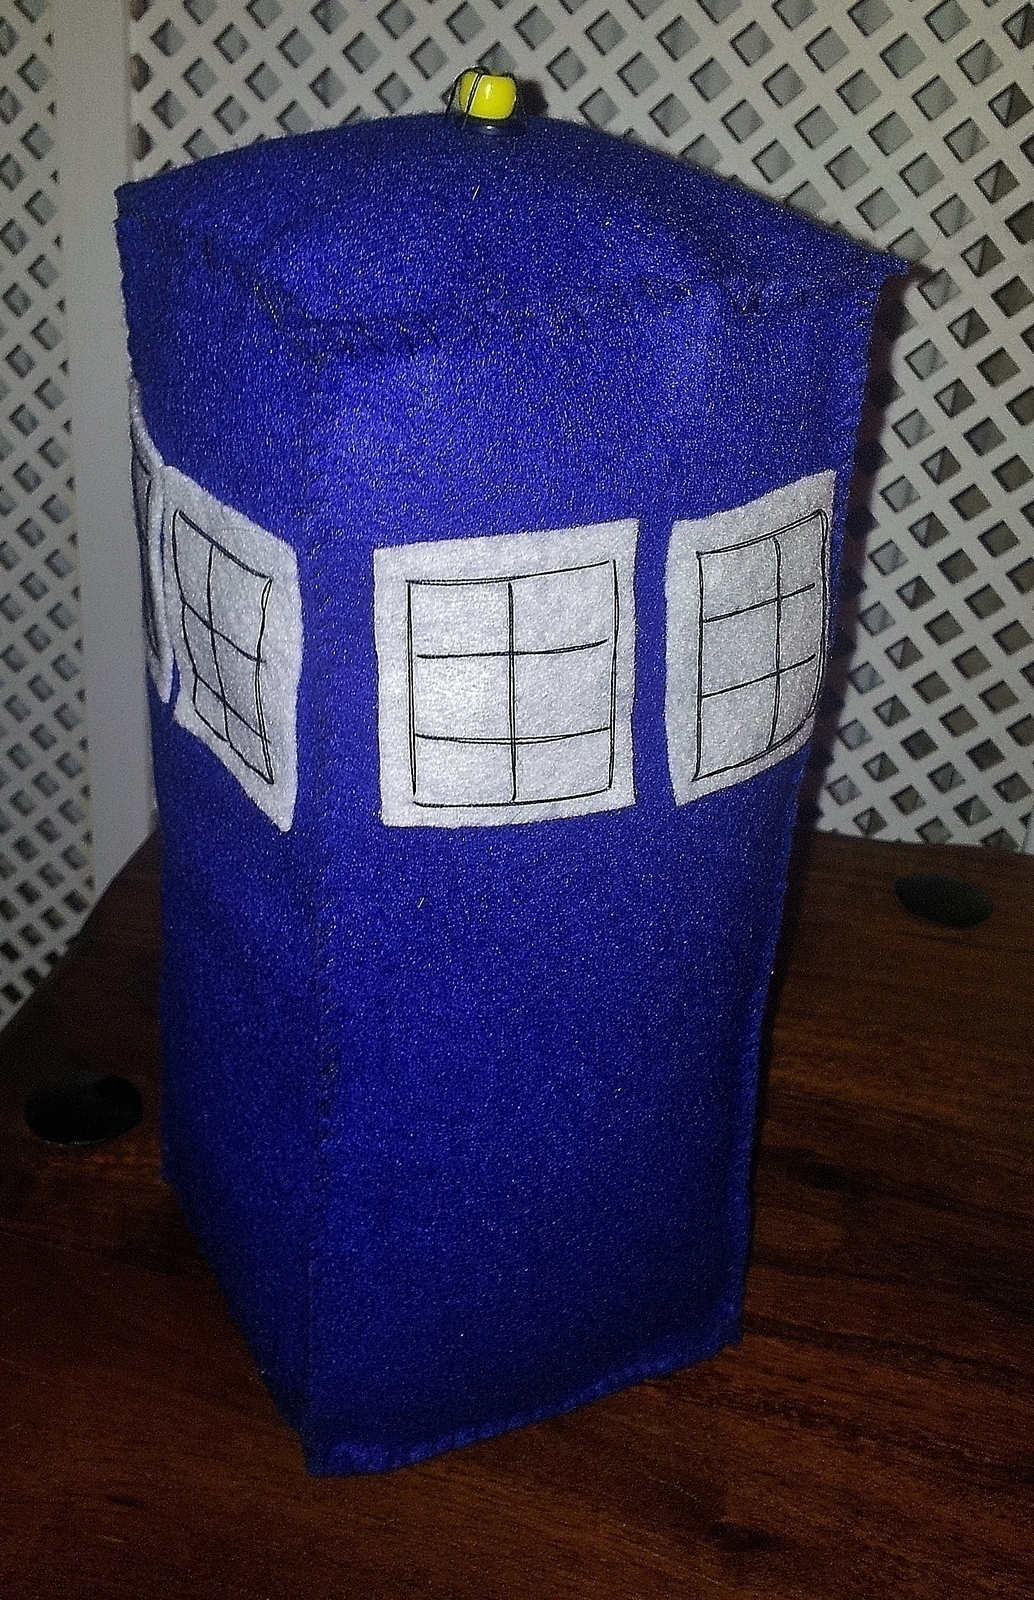 Doctor Who Felt Tardis 183 A Doctor Who Plushie 183 Embroidery